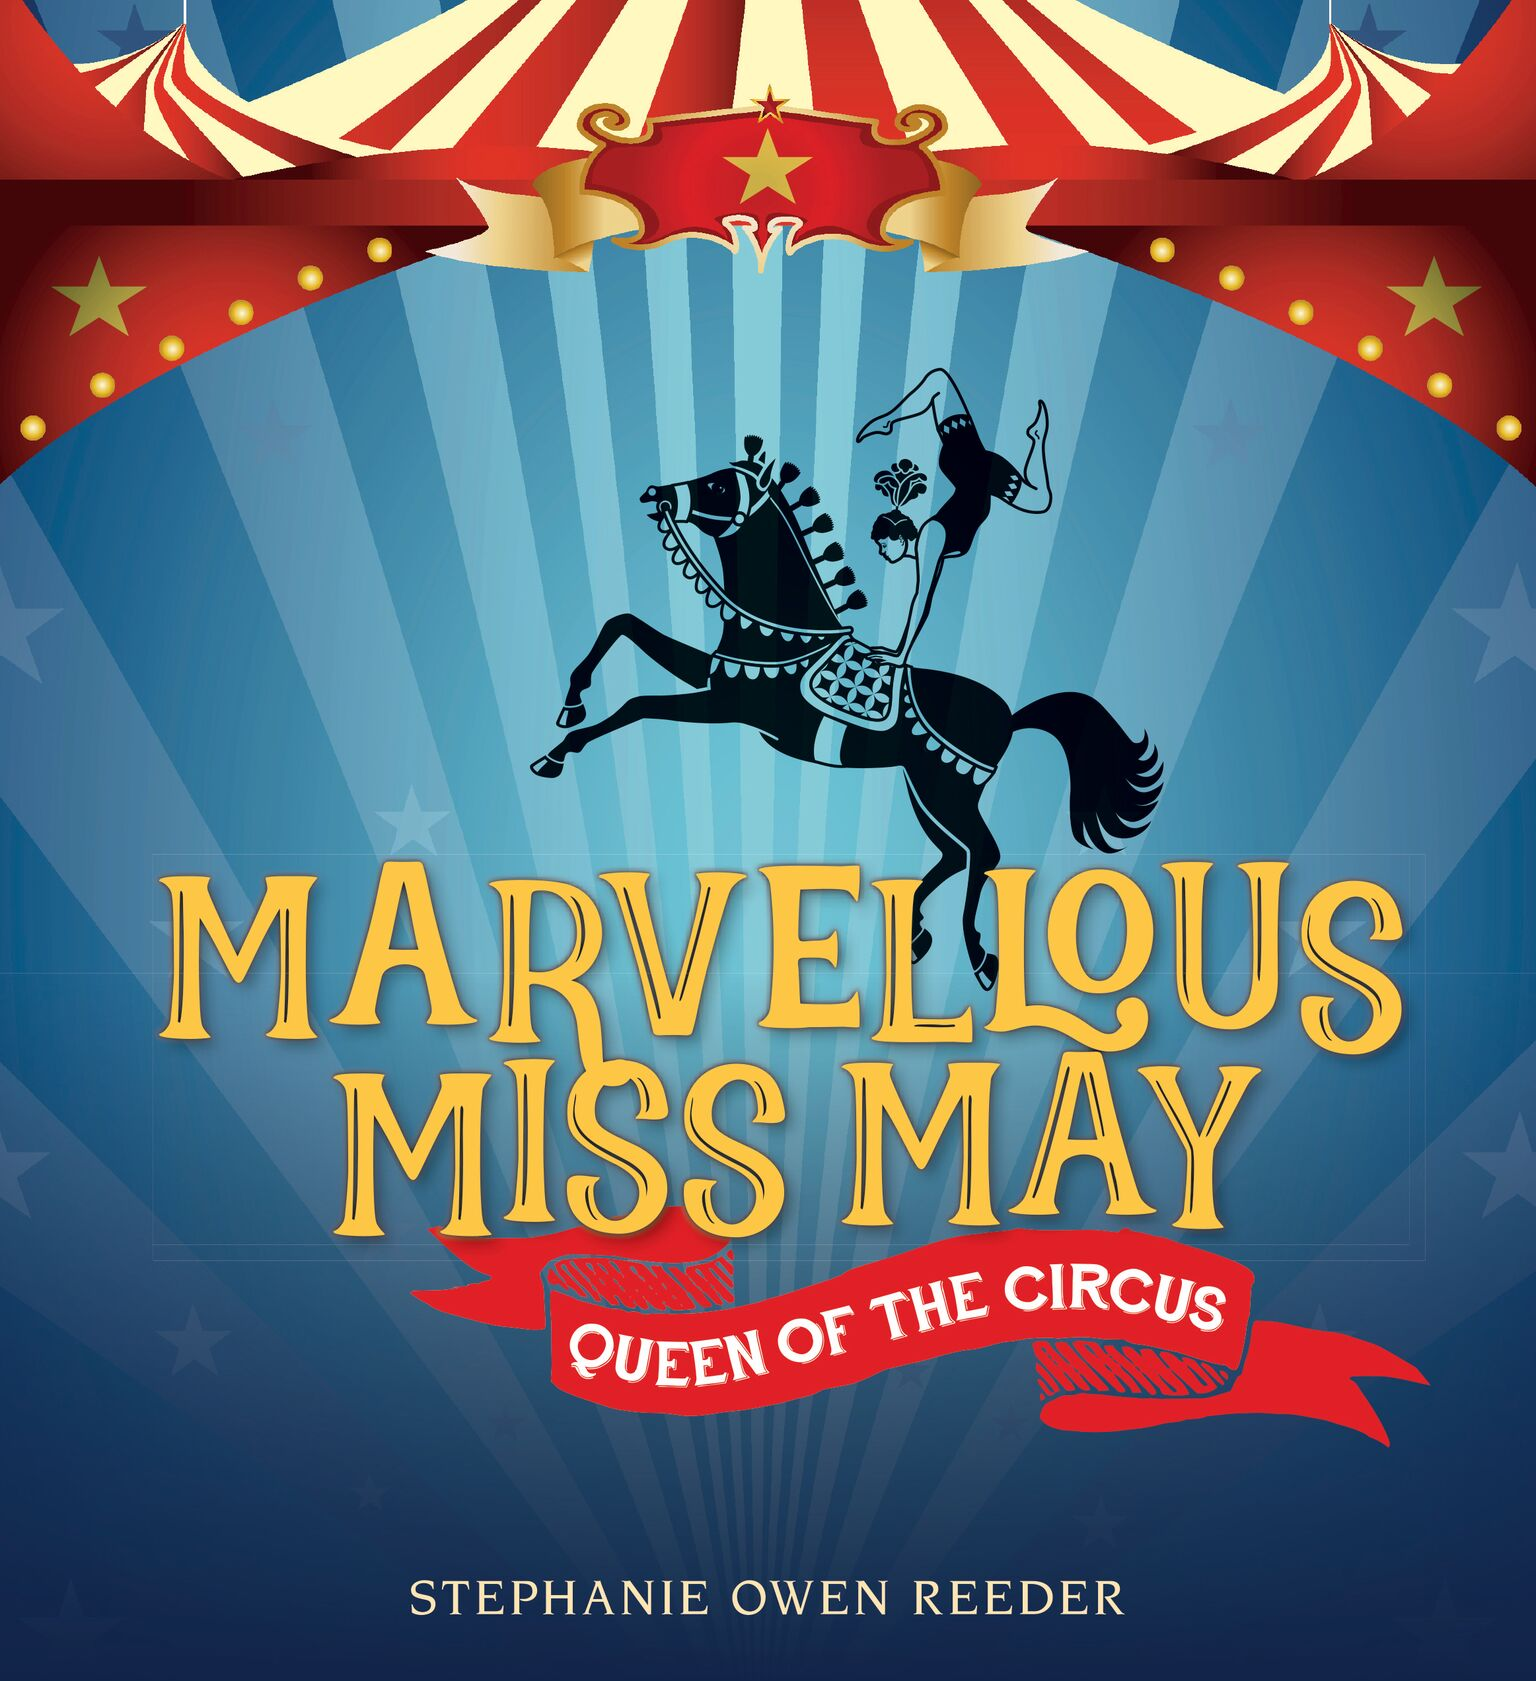 Marvellous Miss MayQueen of the Circus